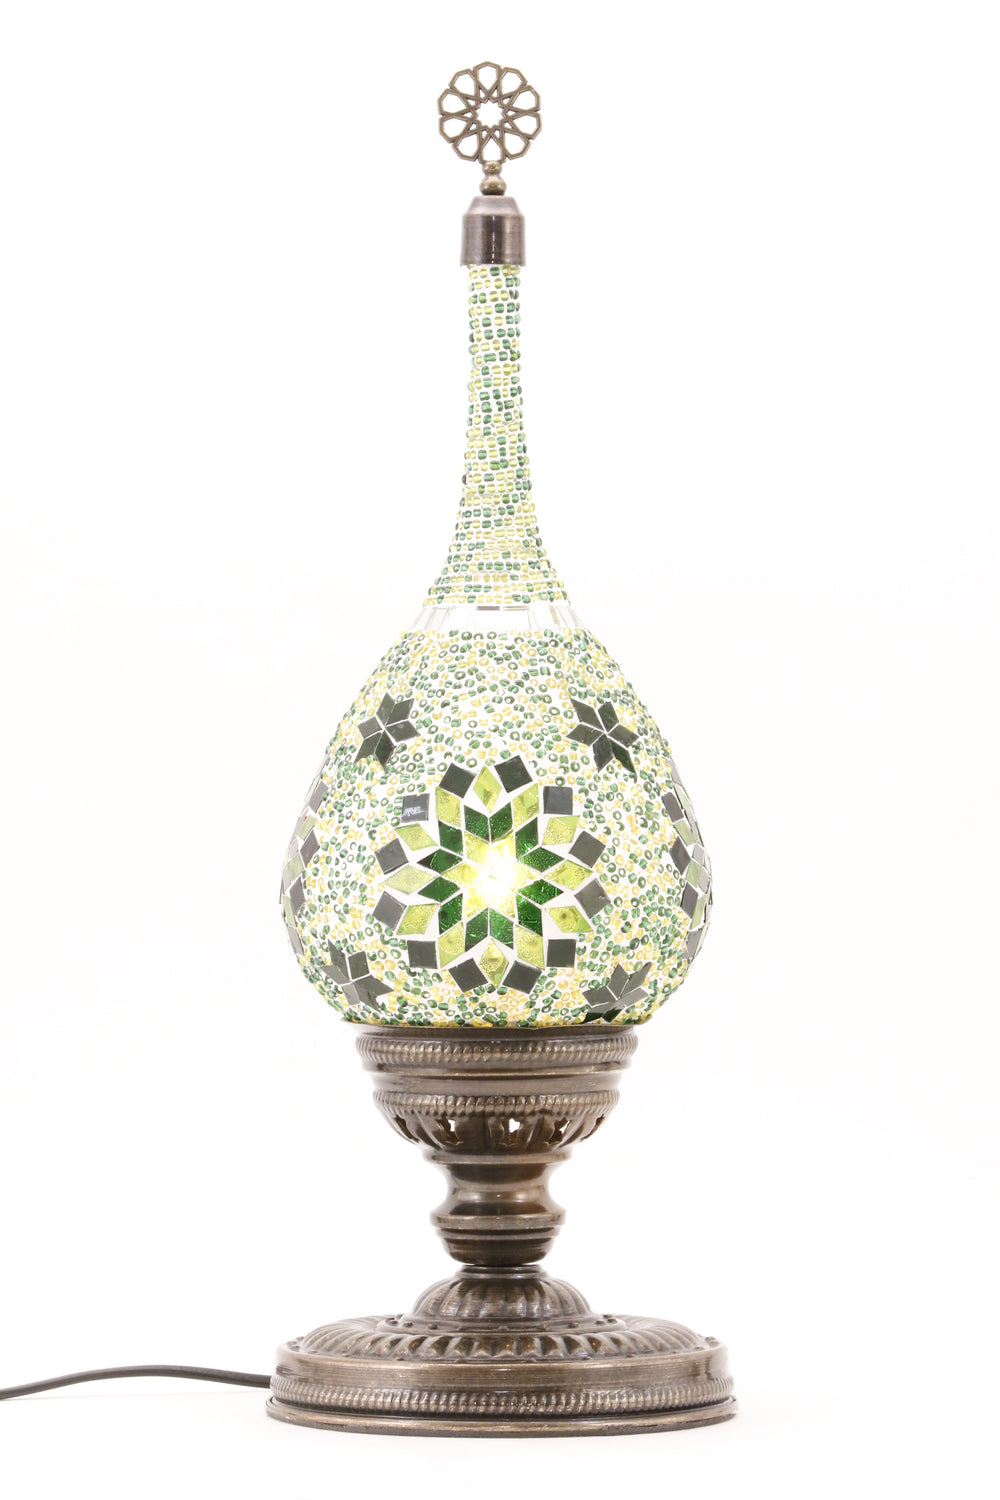 TEAR DROP SHAPED TURKISH MOSAIC TABE LAMP GREEN-TURNED ON